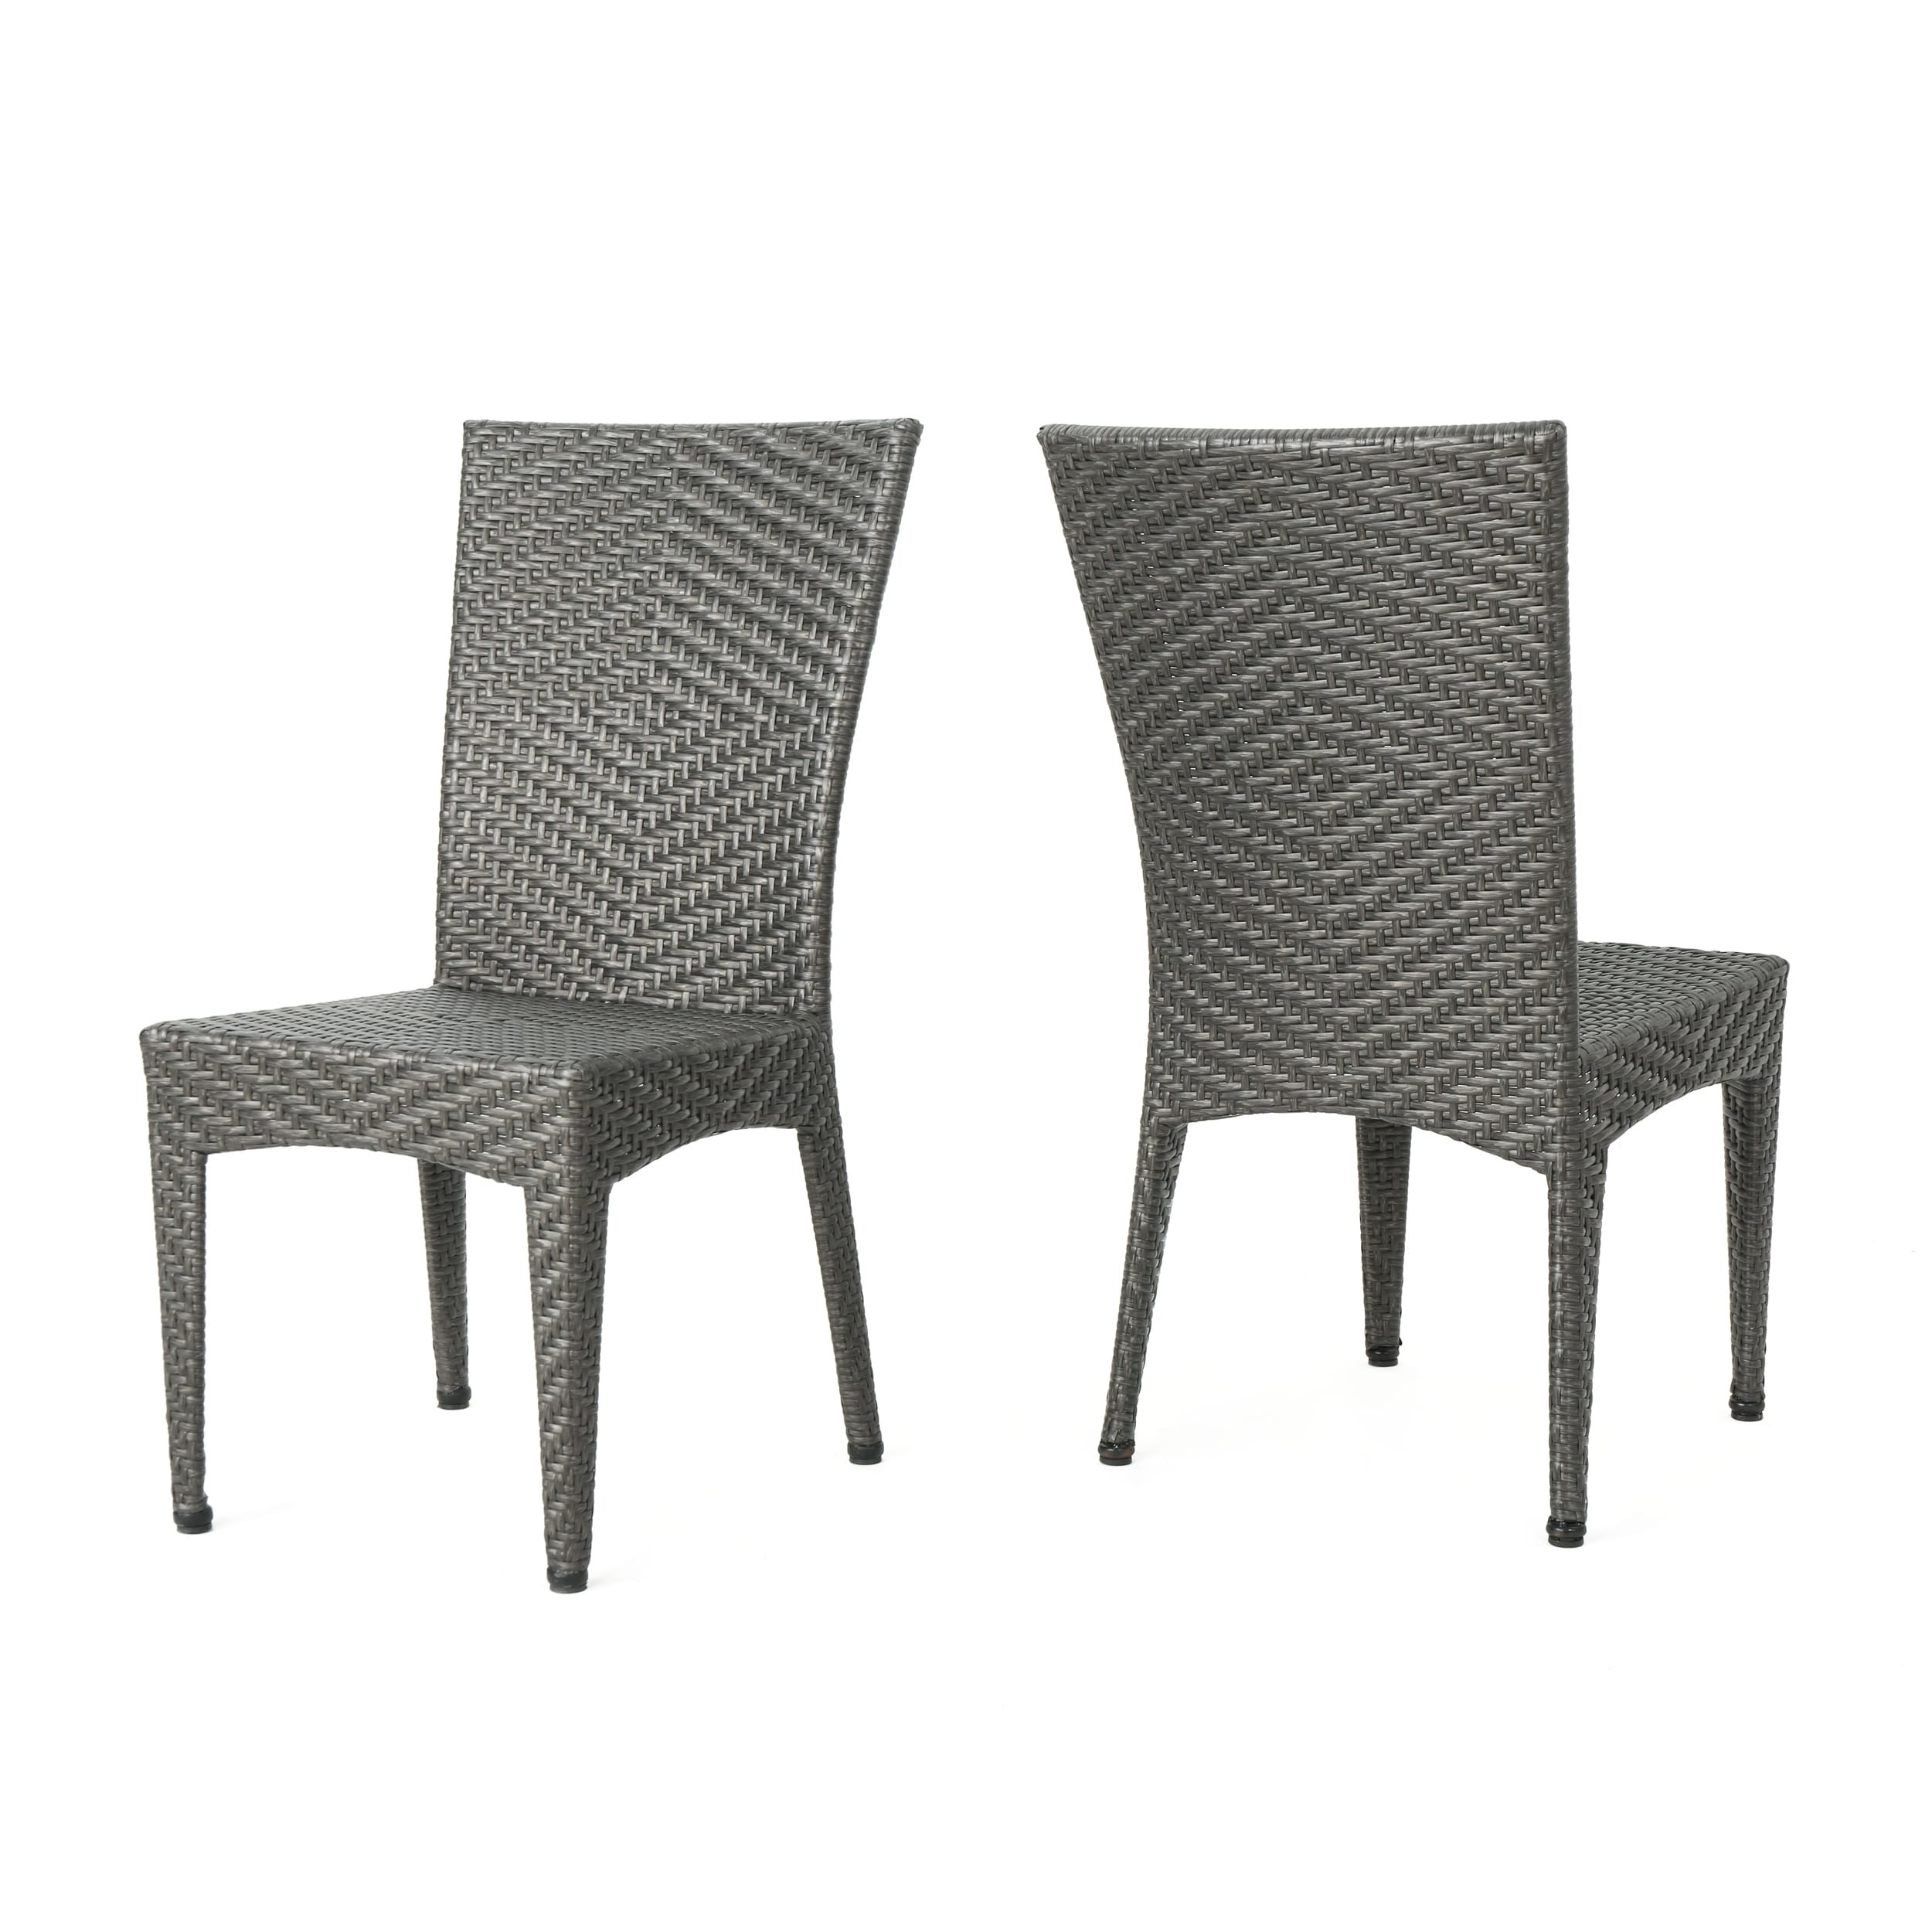 of wicker great alameda set furniture grey chair outdoor products deal chairs